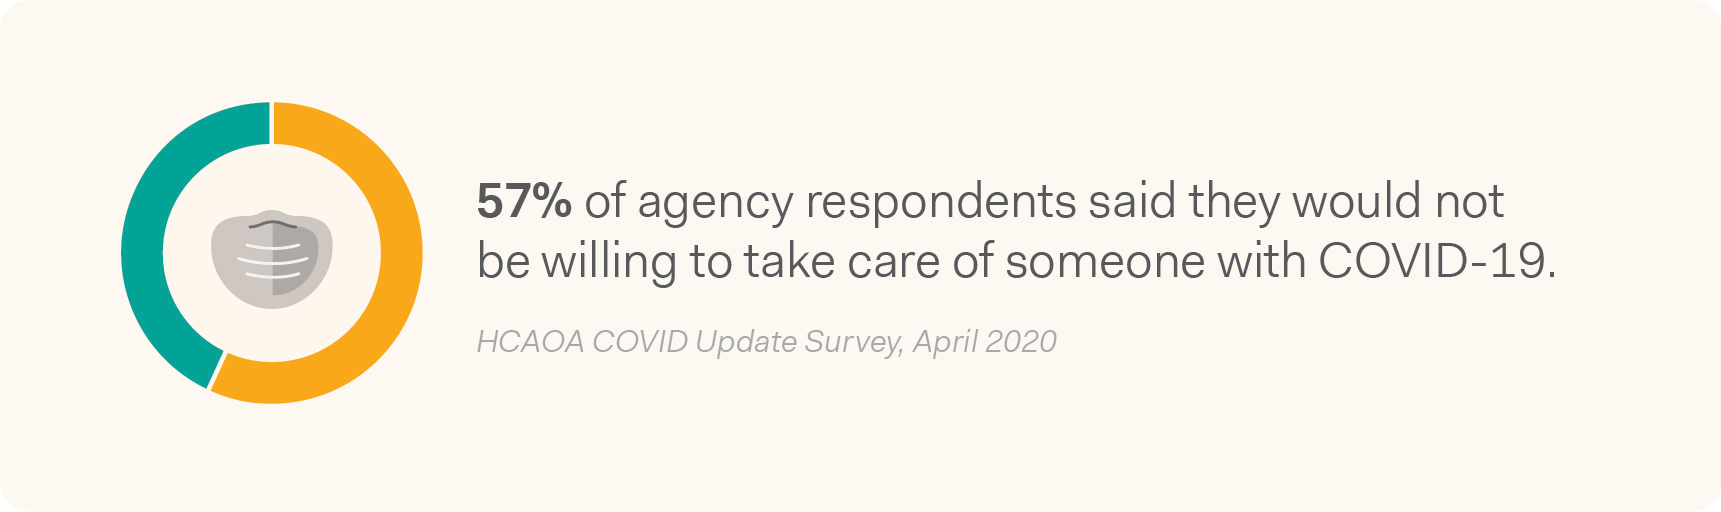 57% of home care agency survey respondents said they would not be willing to take care of someone with COVID-19.